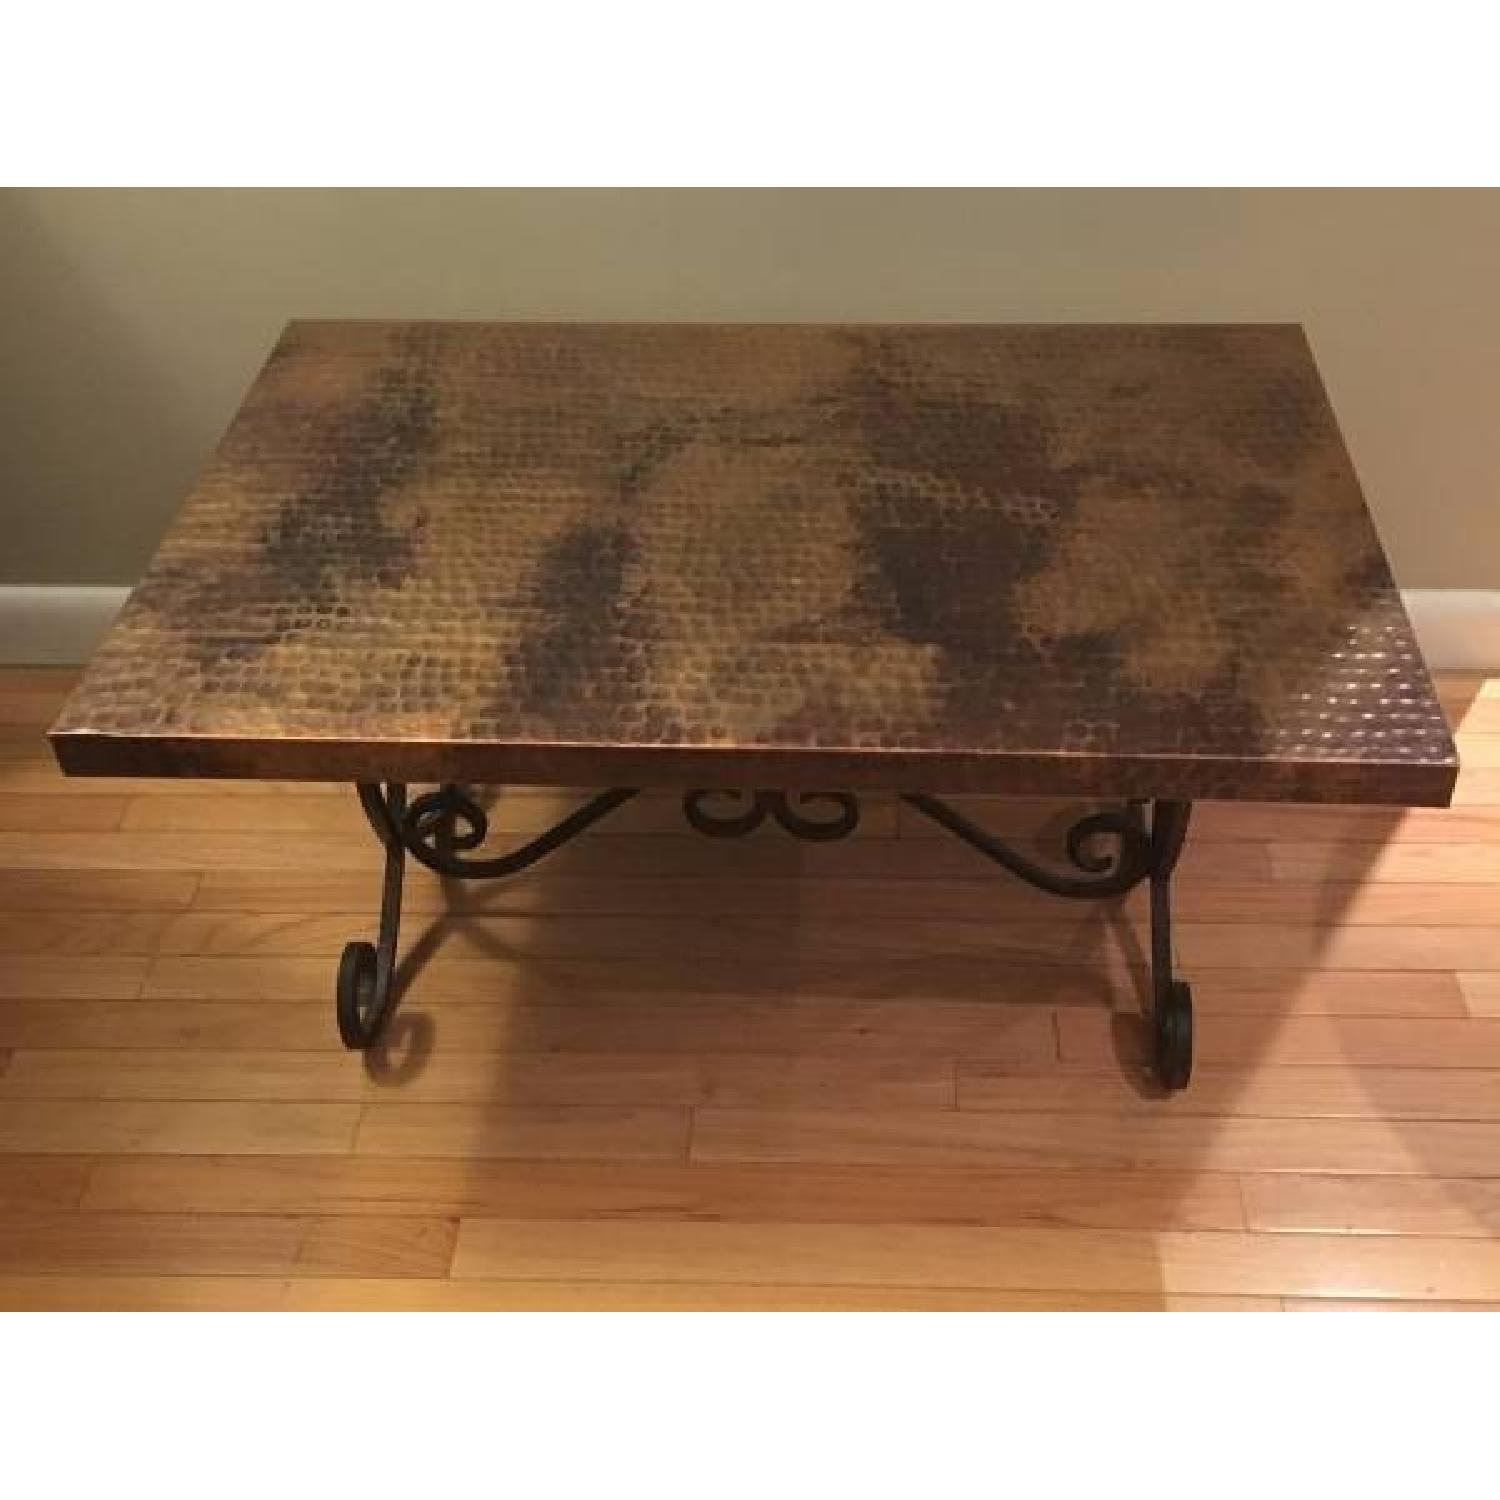 Hammered Copper Top Coffee Table - image-3